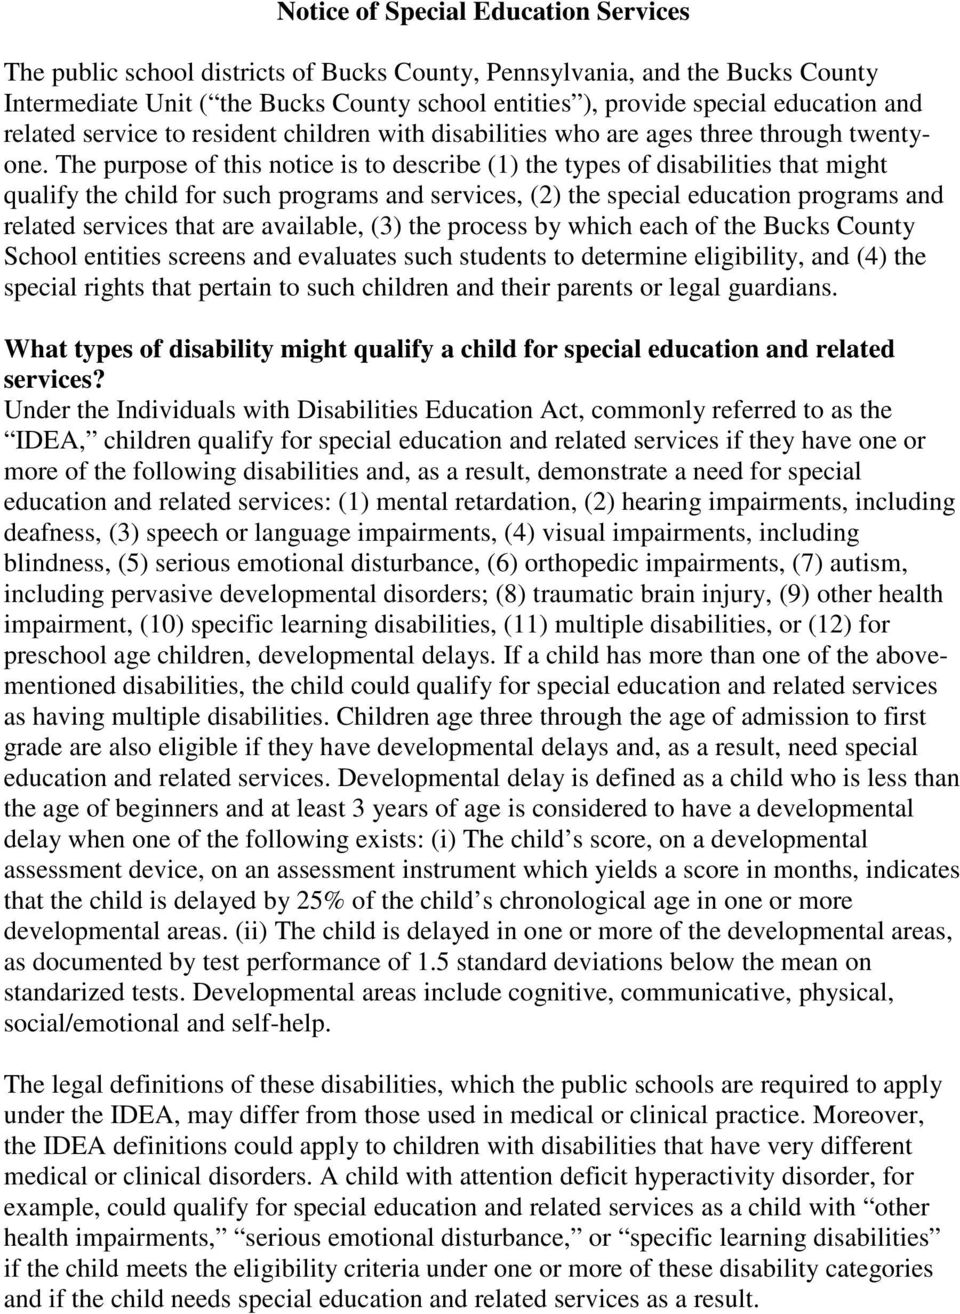 The purpose of this notice is to describe (1) the types of disabilities that might qualify the child for such programs and services, (2) the special education programs and related services that are